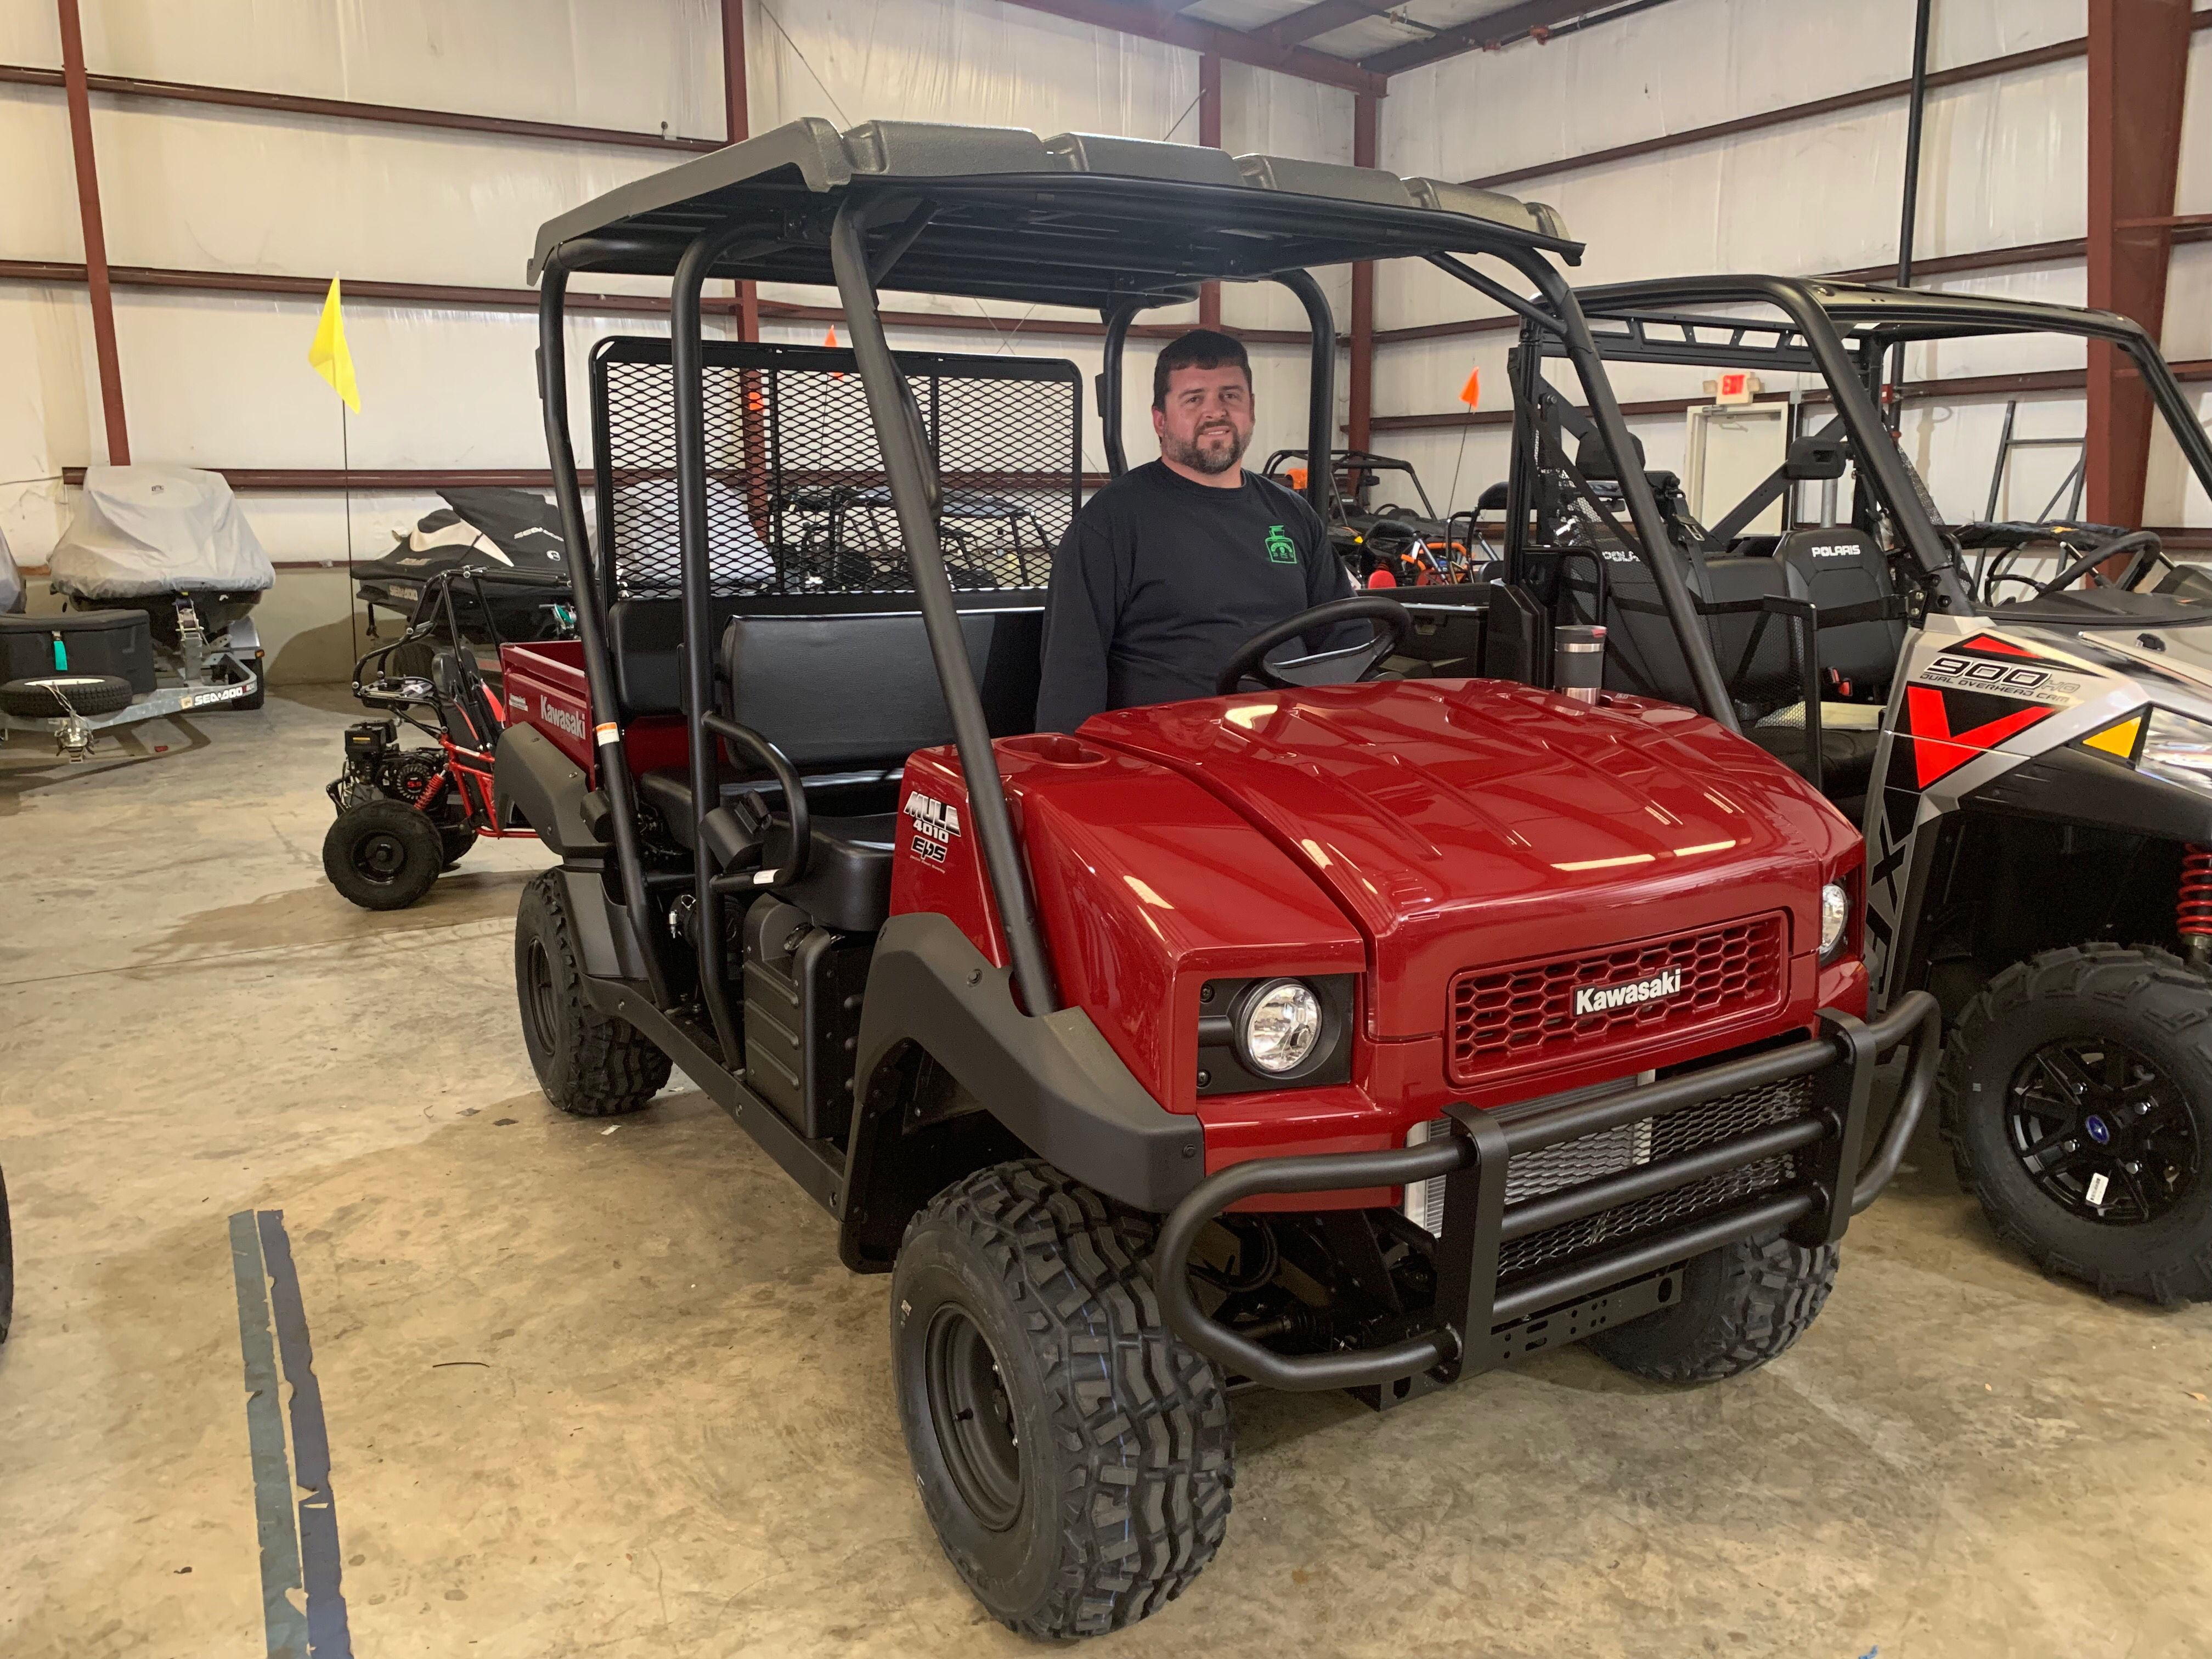 Congratulations to Ian McCoy from Saucier, MS for getting a